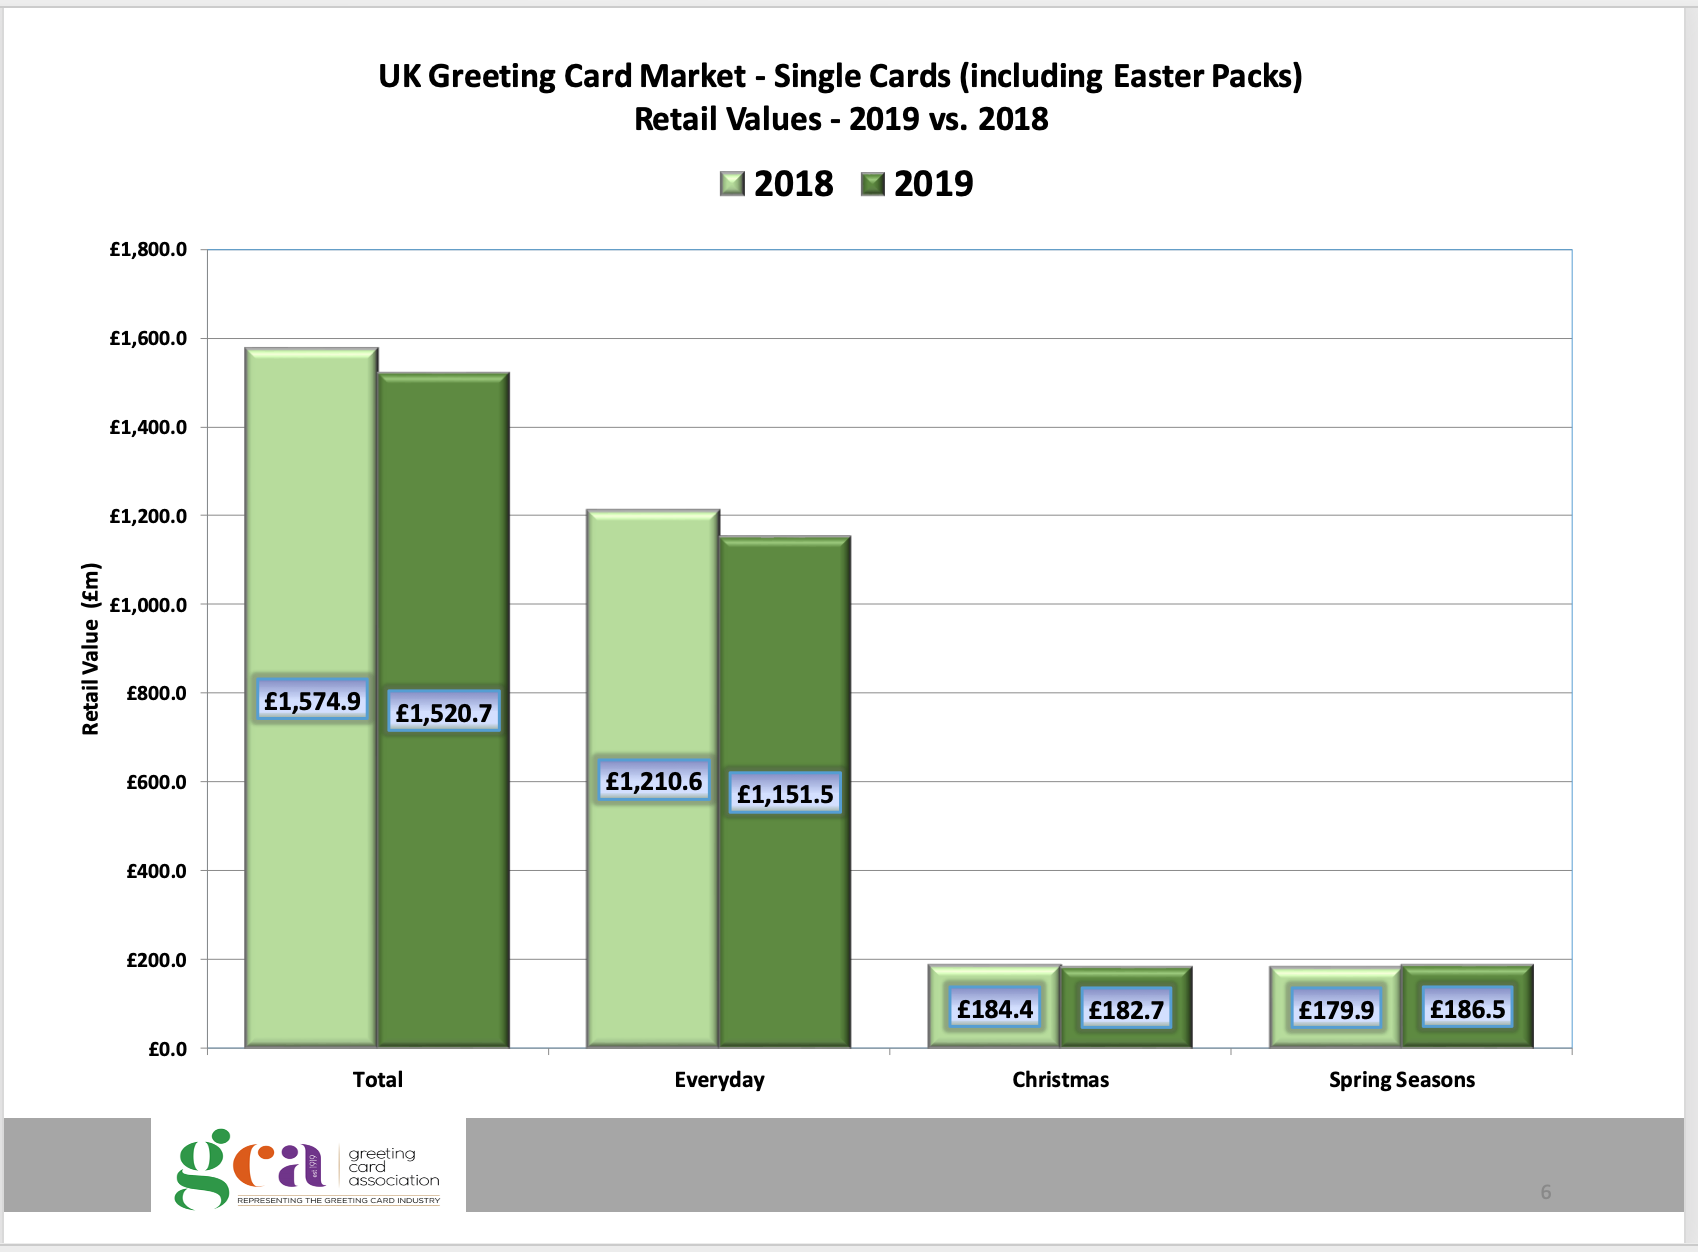 Above: A reassuring graph from the recently published GCA UK Greeting Card Market Report.